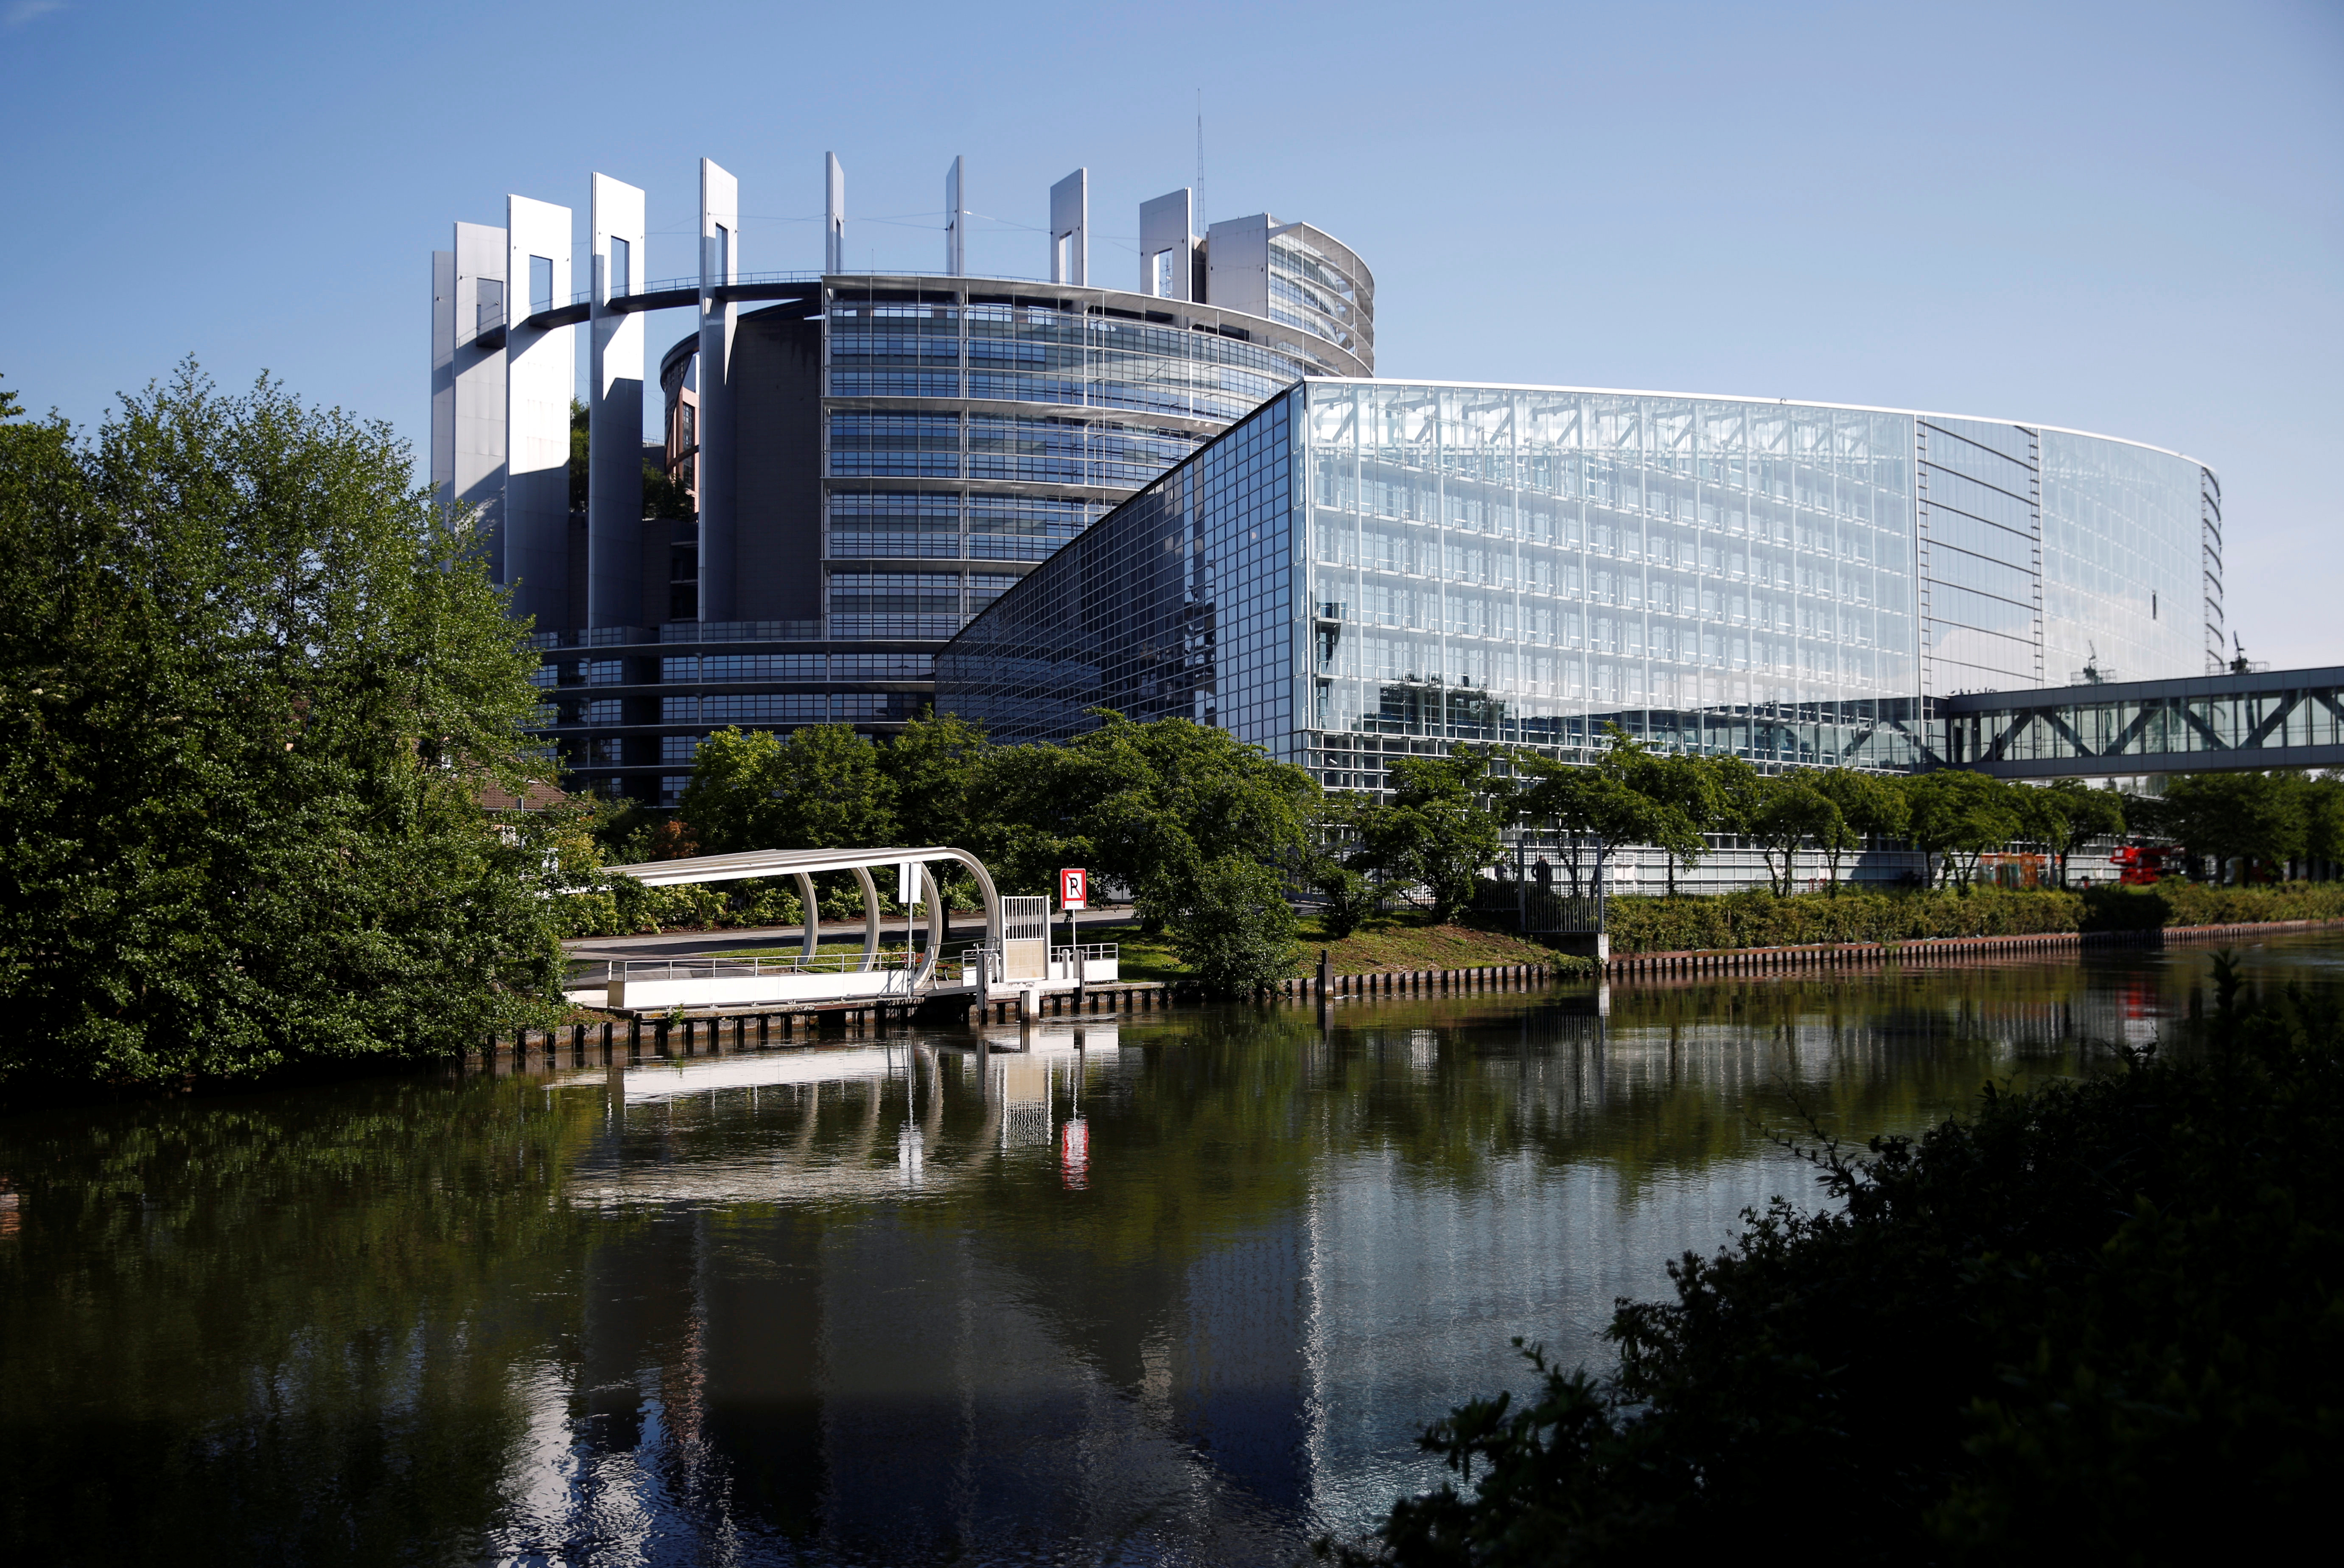 The building of the European Parliament, designed by Architecture-Studio architects, is seen in Strasbourg, France, May 22, 2019. REUTERS/Vincent Kessler